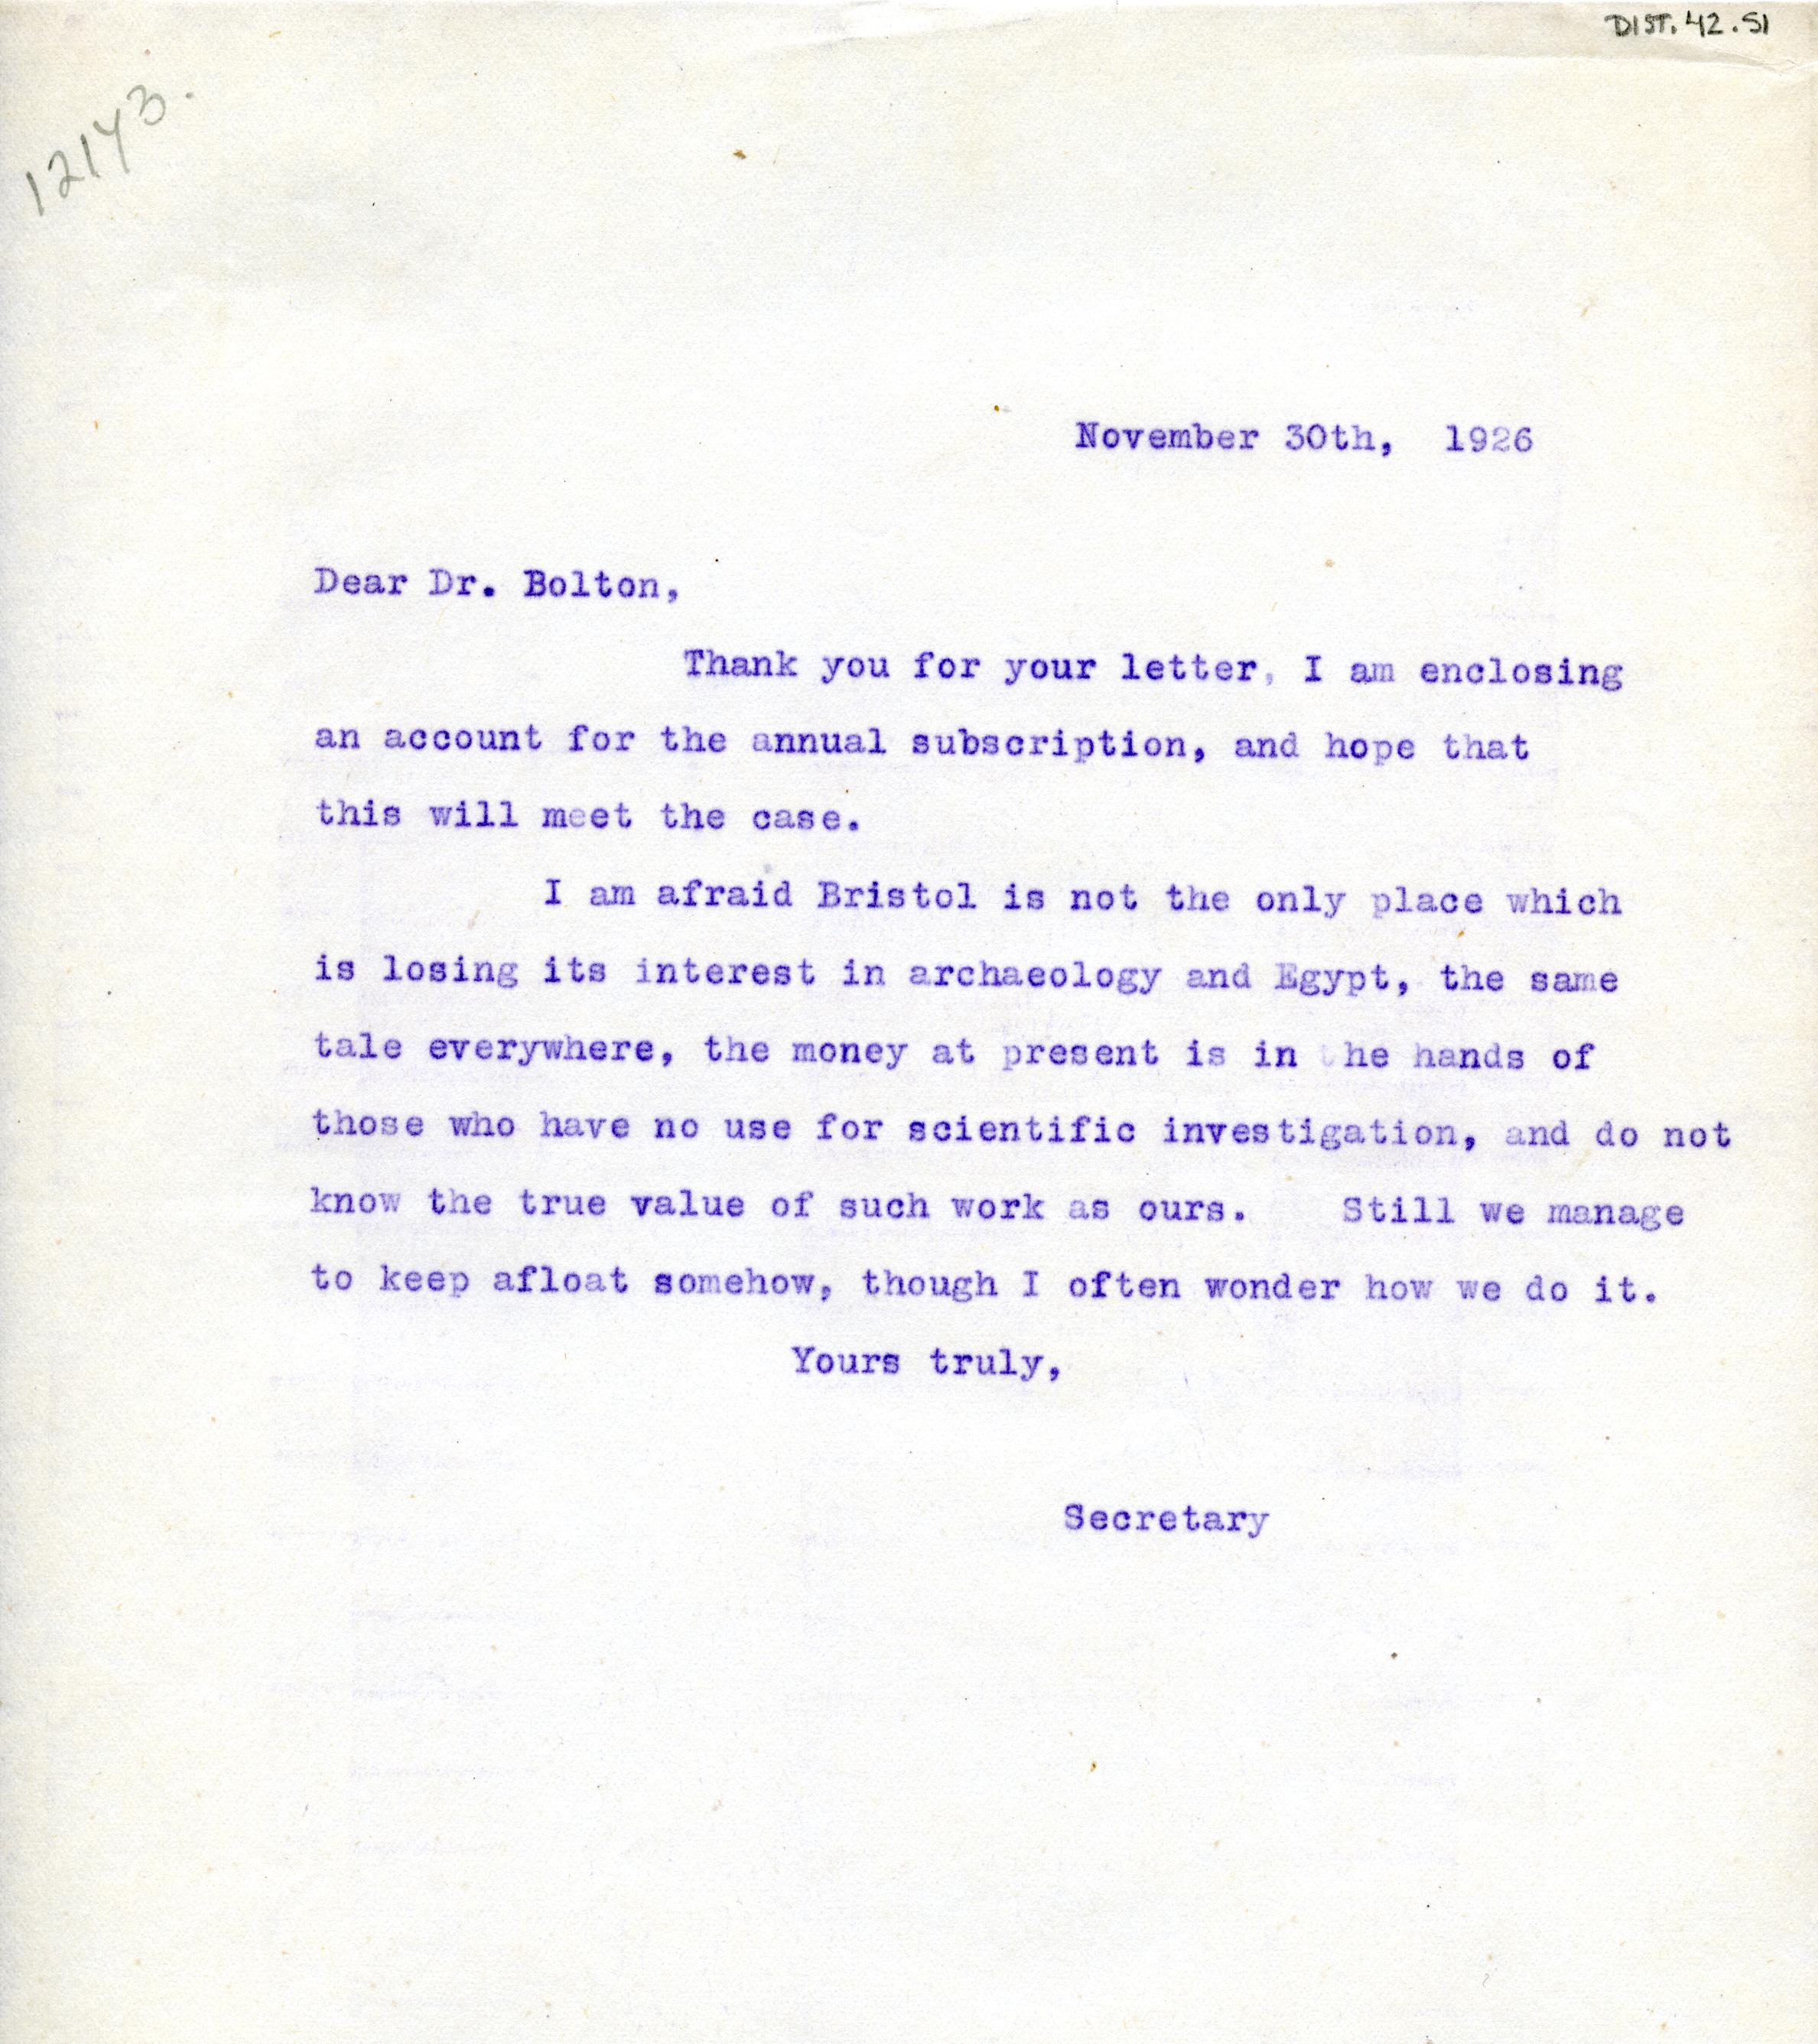 1922-71 Miscellaneous correspondence with museums DIST.42.51